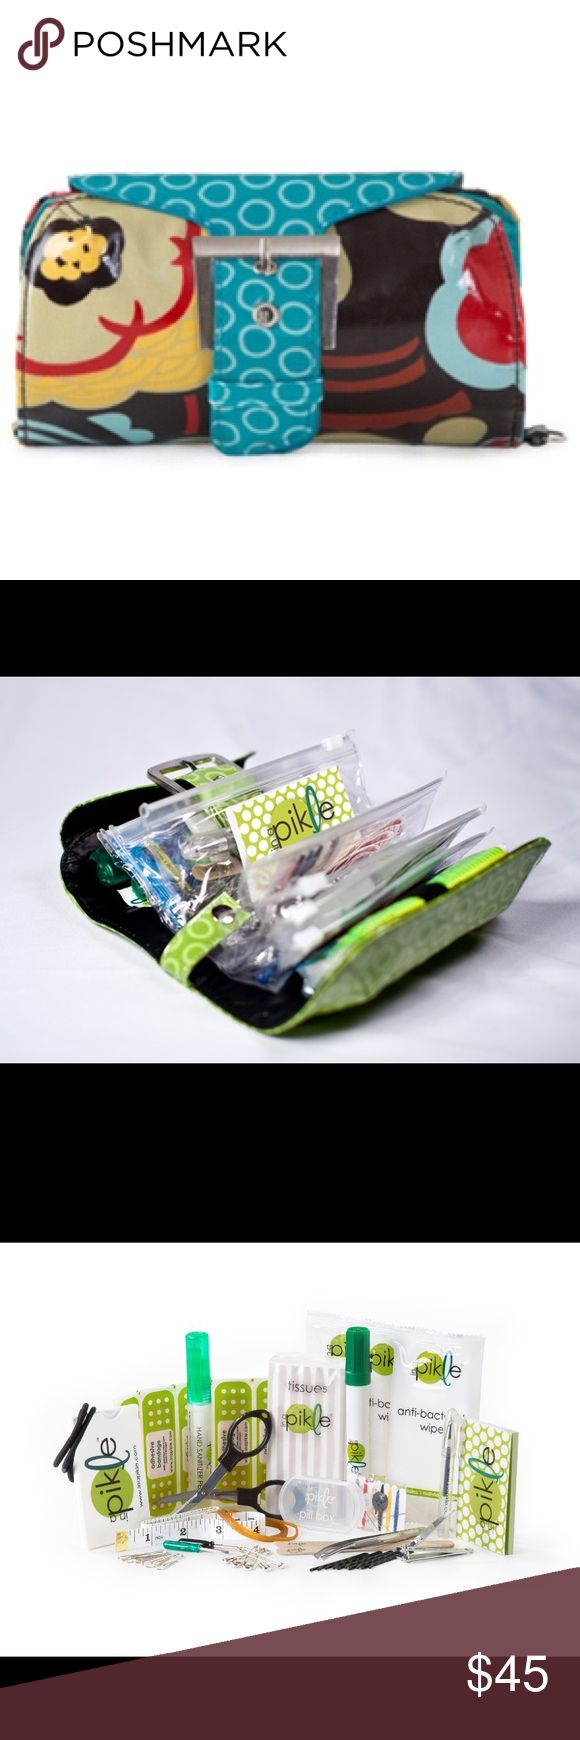 "Pikle bag with matching strap Be prepared for life's emergencies with a fully loaded Pikle bag. Includes: hand sanitizer pen, spot remover pen, antibacterial wipes, mini mirror/floss combo, tweezers, fingernail clippers, emery boards, travel size sewing kit, retractable mini scissors, 24"" tape measure, hair bands, rubber bands, bobby pins, safety pins, paper clips, mini screw driver, mini pen, sticky notepad, adhesive bandages, travel tissues and a pill box. Gift box included!!! Accessories"